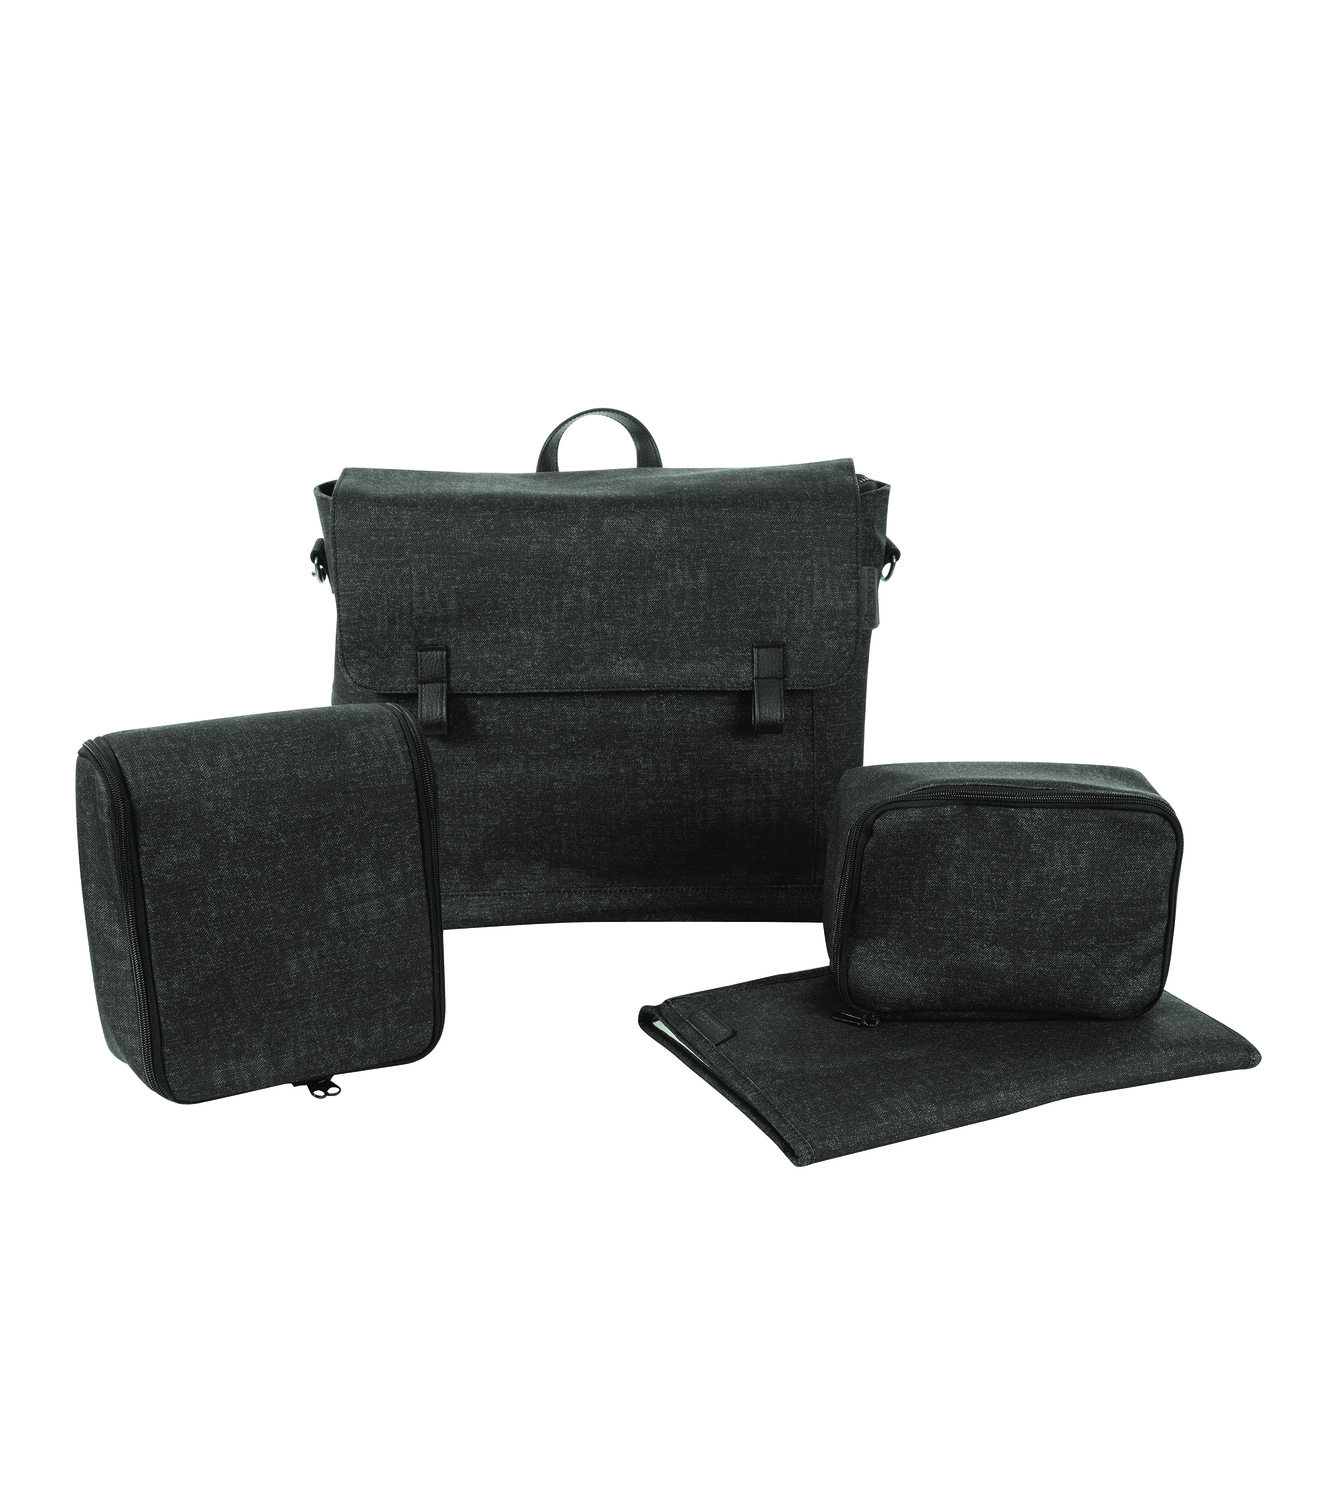 maxi cosi wickeltasche messenger taschen jetzt online. Black Bedroom Furniture Sets. Home Design Ideas